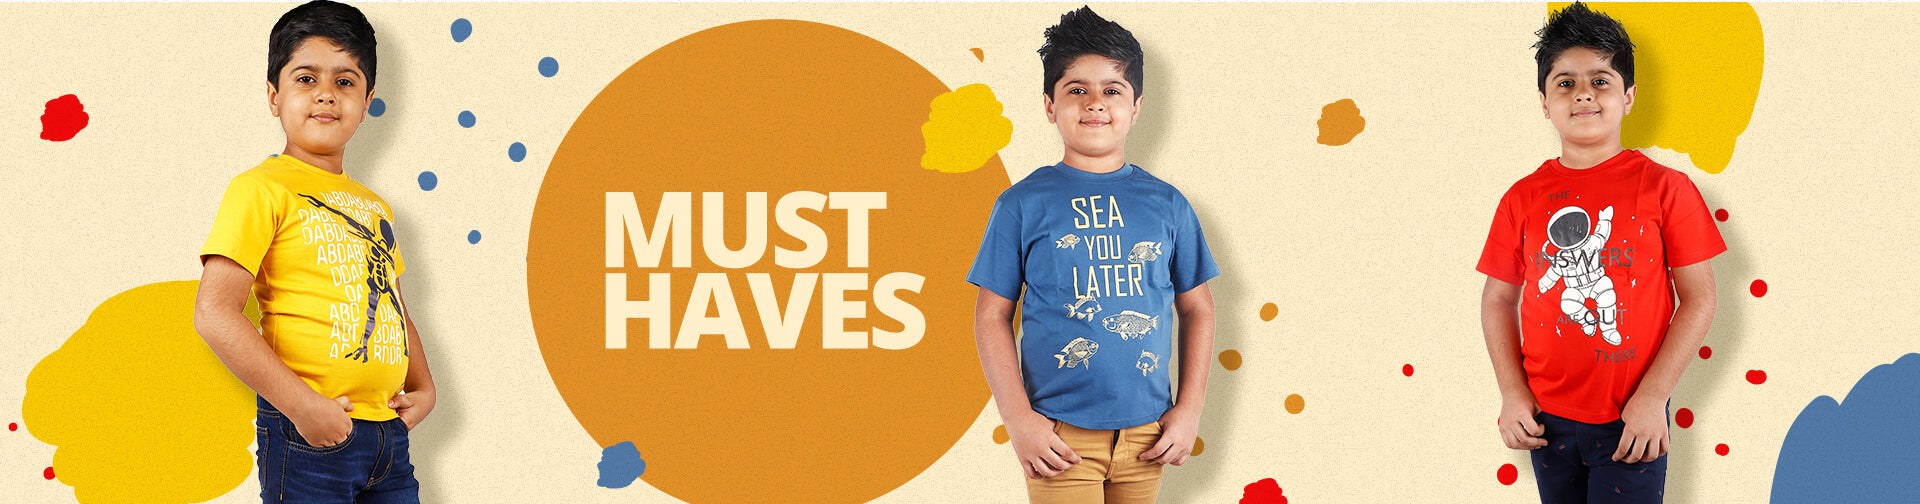 MUST HAVES boys tshirts and shirts